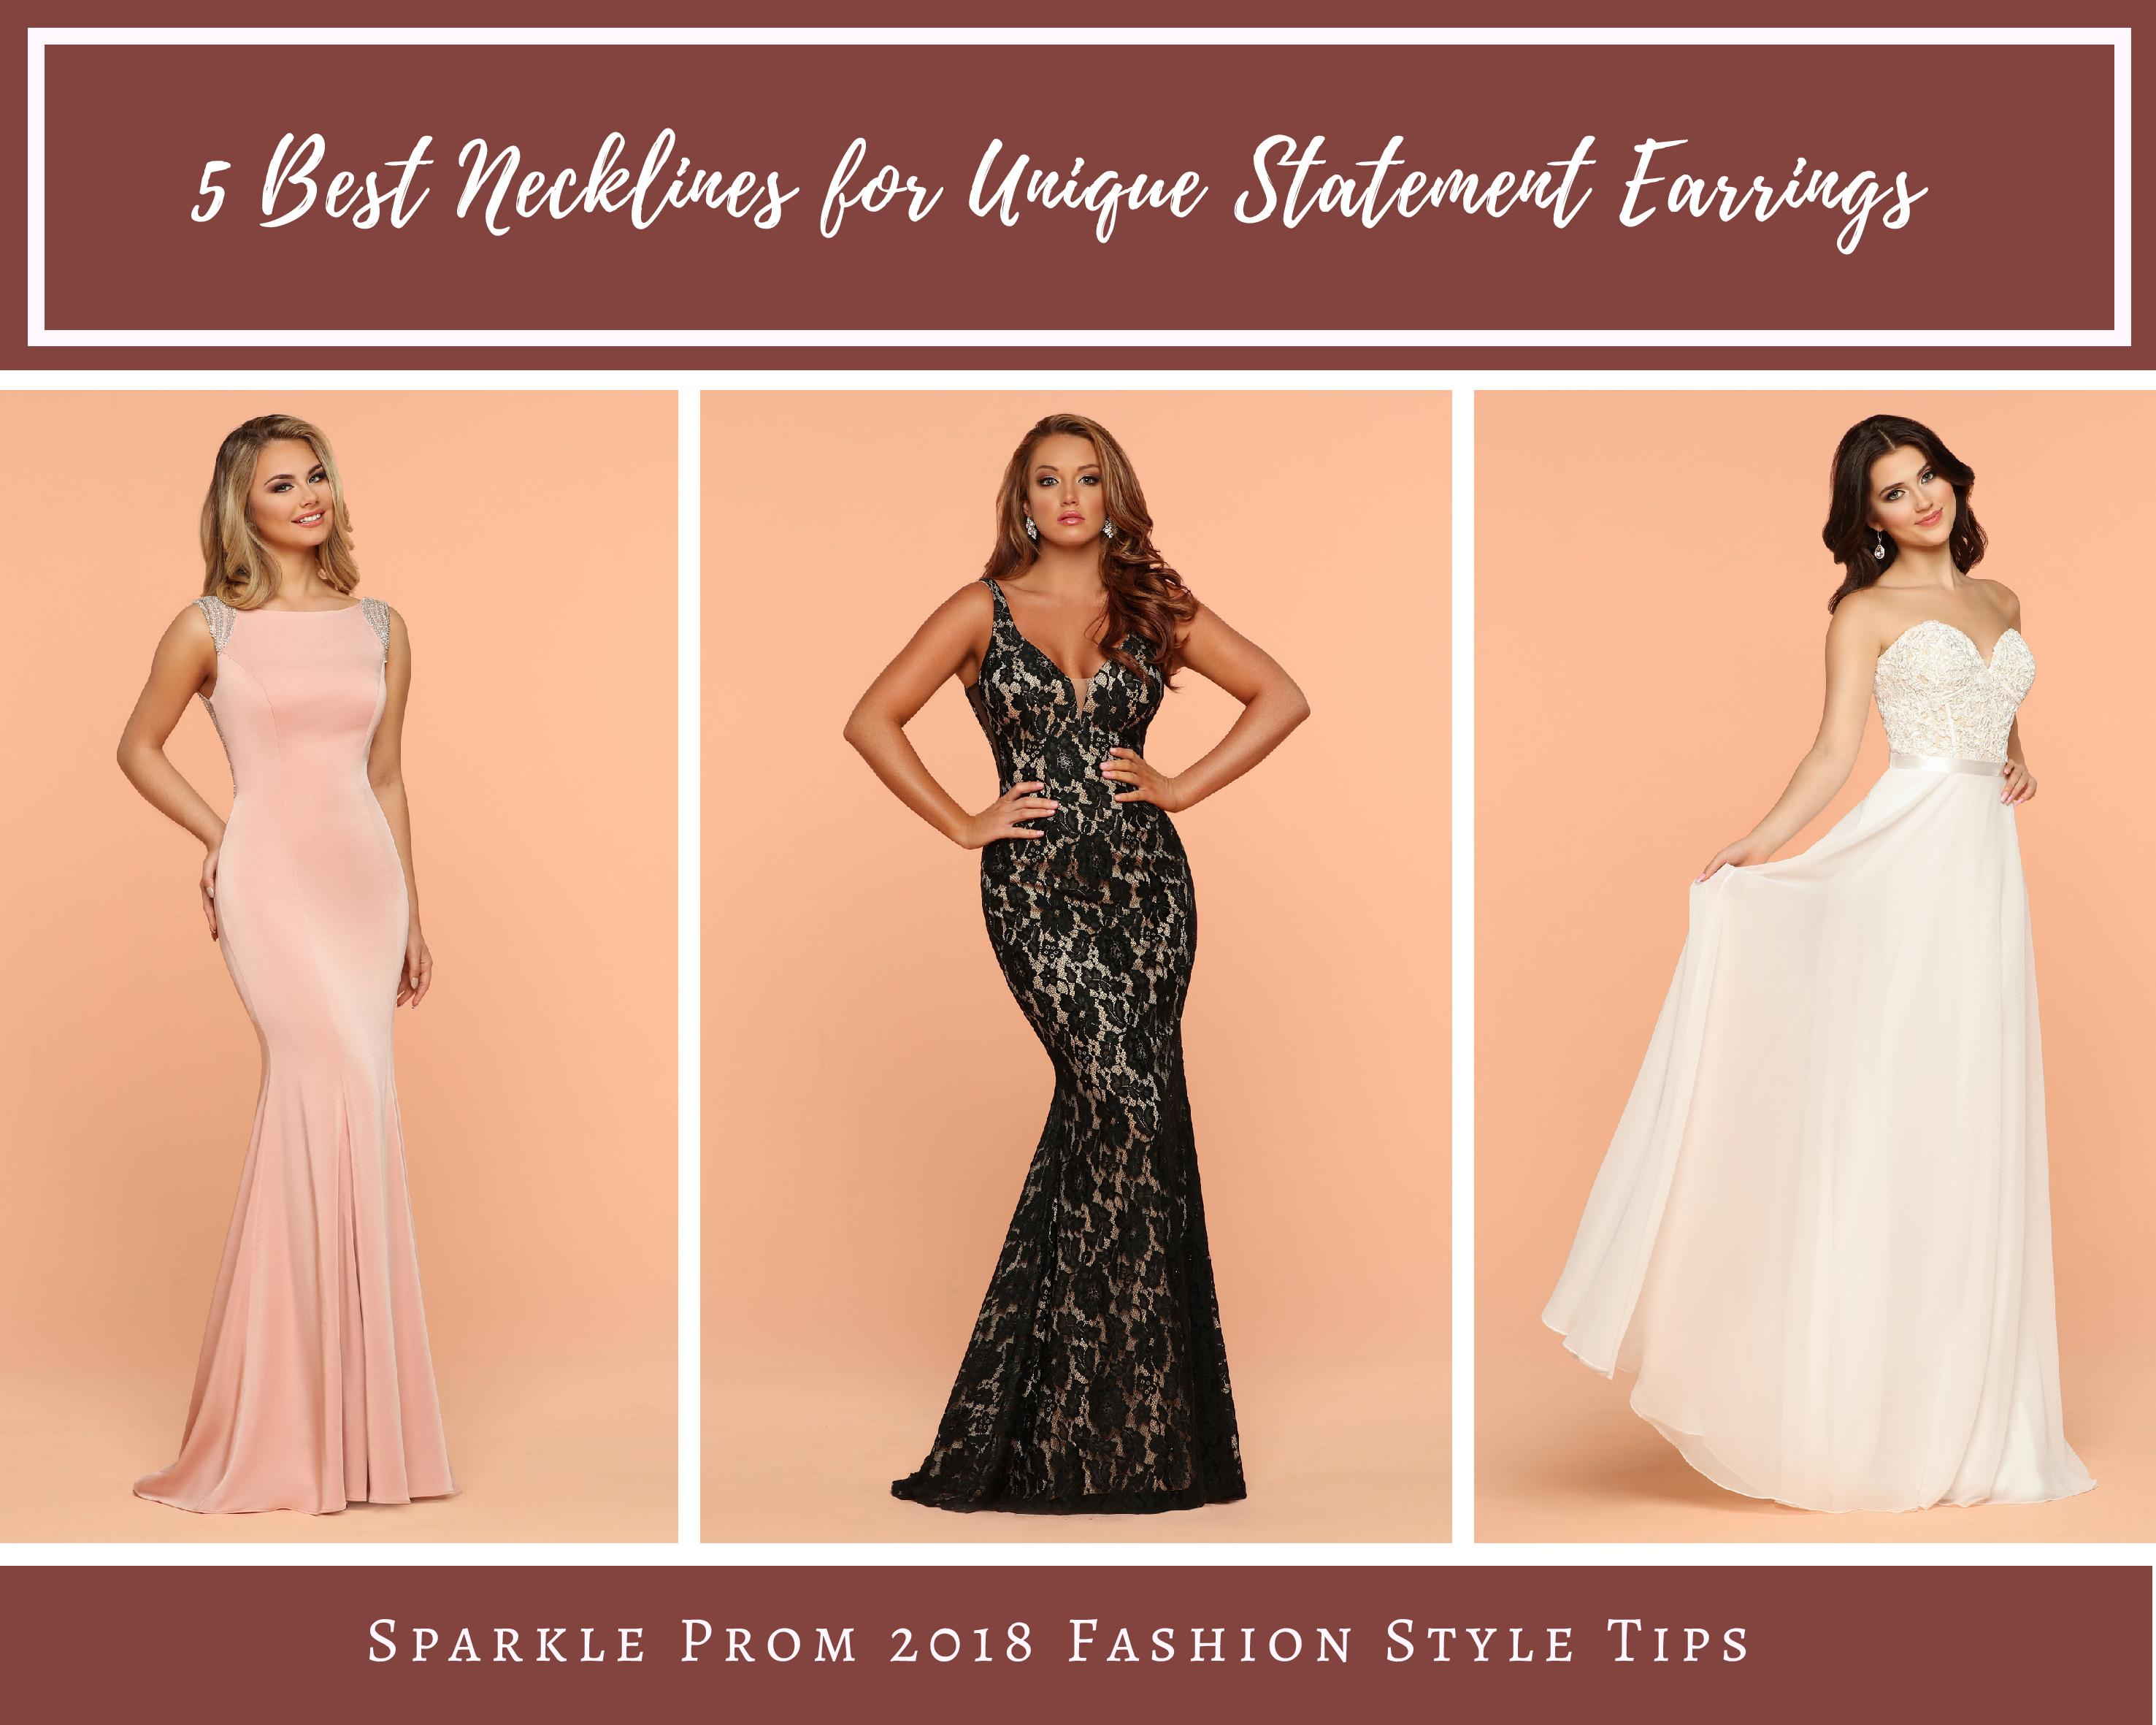 5 Best Necklines for Unique Statement Earrings – Sparkle Prom 2018 Fashion Style Tips